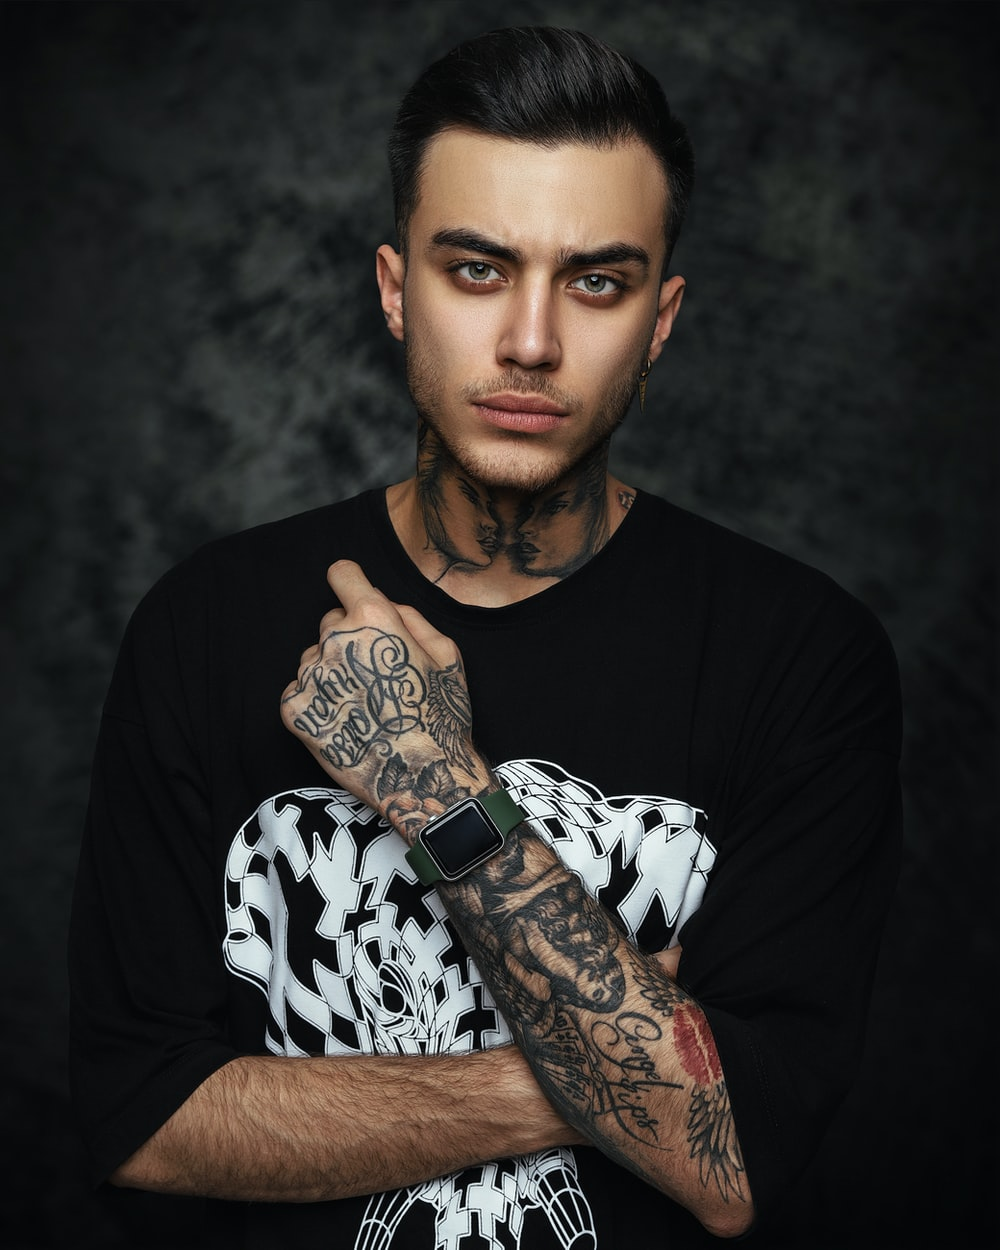 man in black crew neck t-shirt with black and white skull tattoo on his right